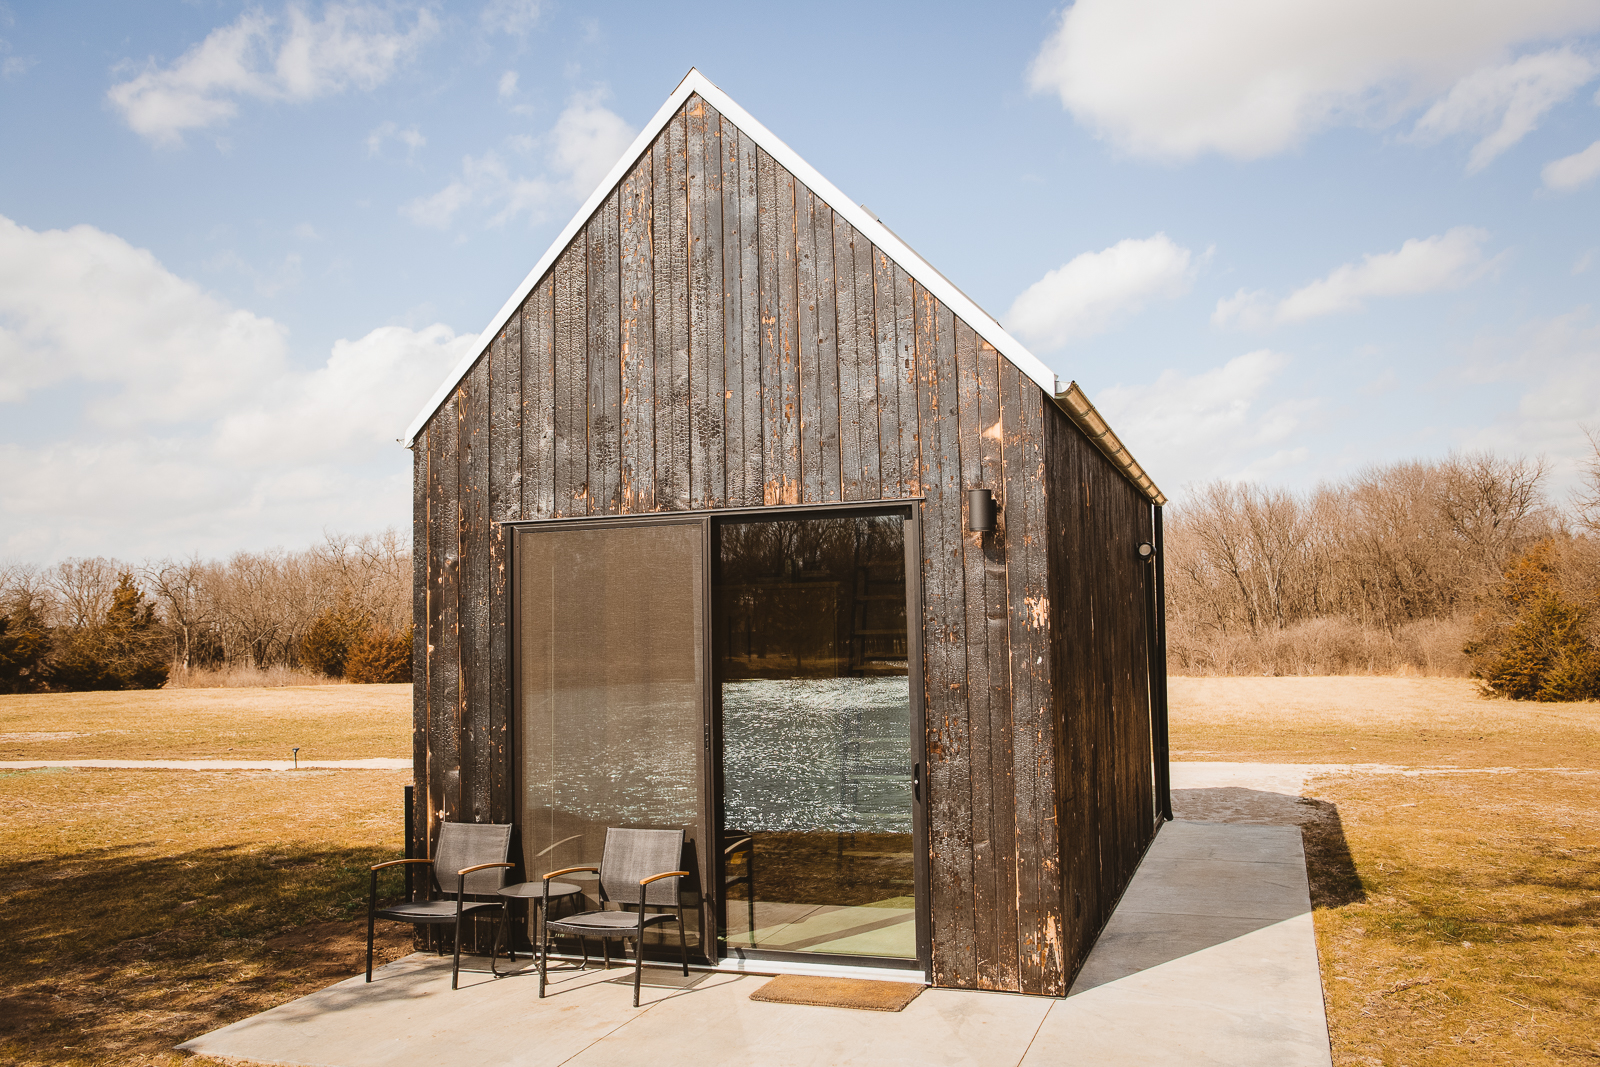 Our beautiful cabins are available to rent for the perfect getaway near Kansas City, Springfield, and Wichita.